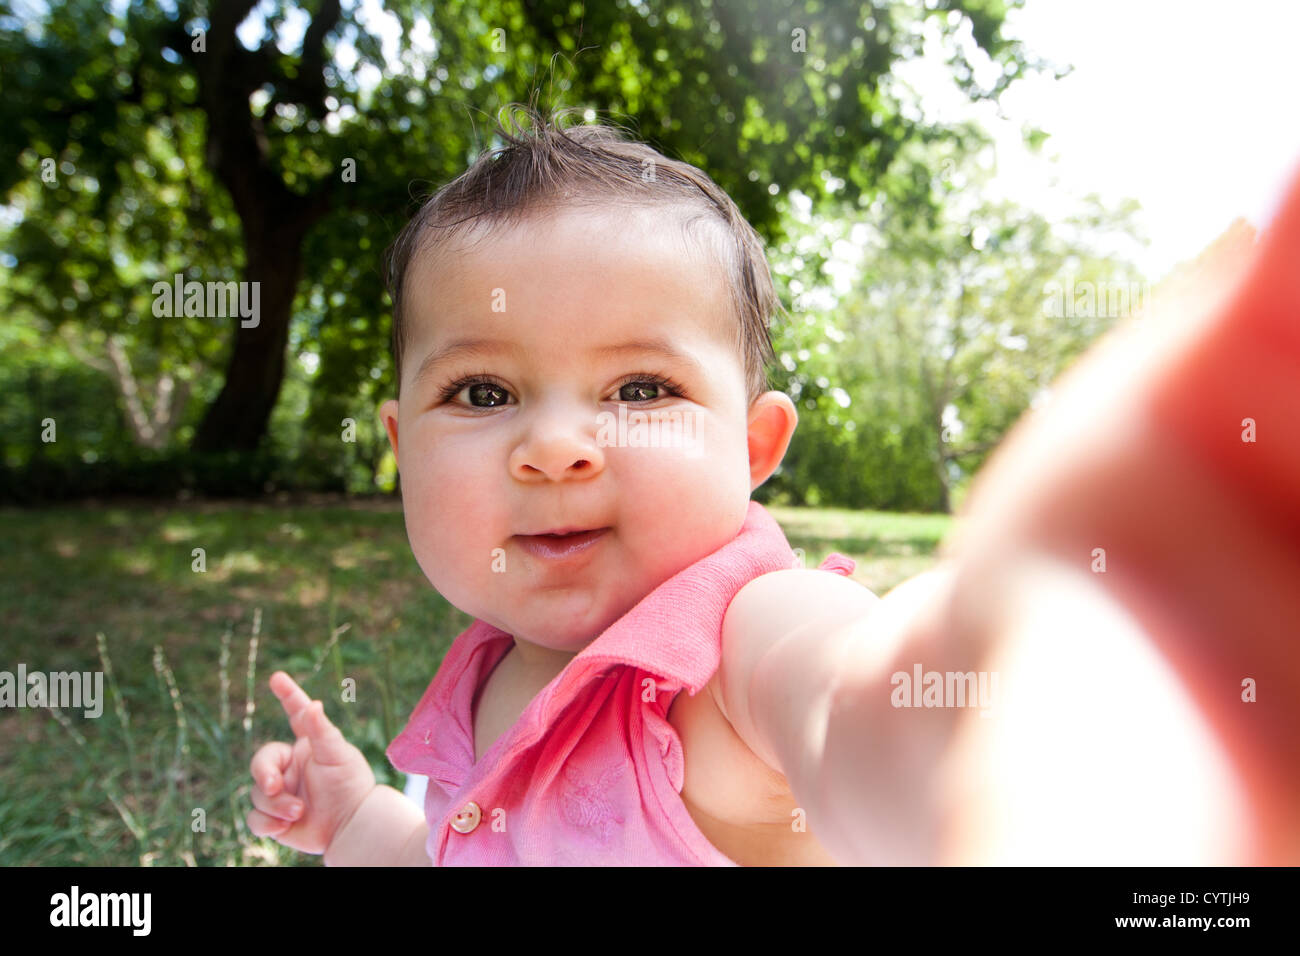 Cute funny happy baby infant sticking arm out as if she's taking self portrait photo in a park. - Stock Image